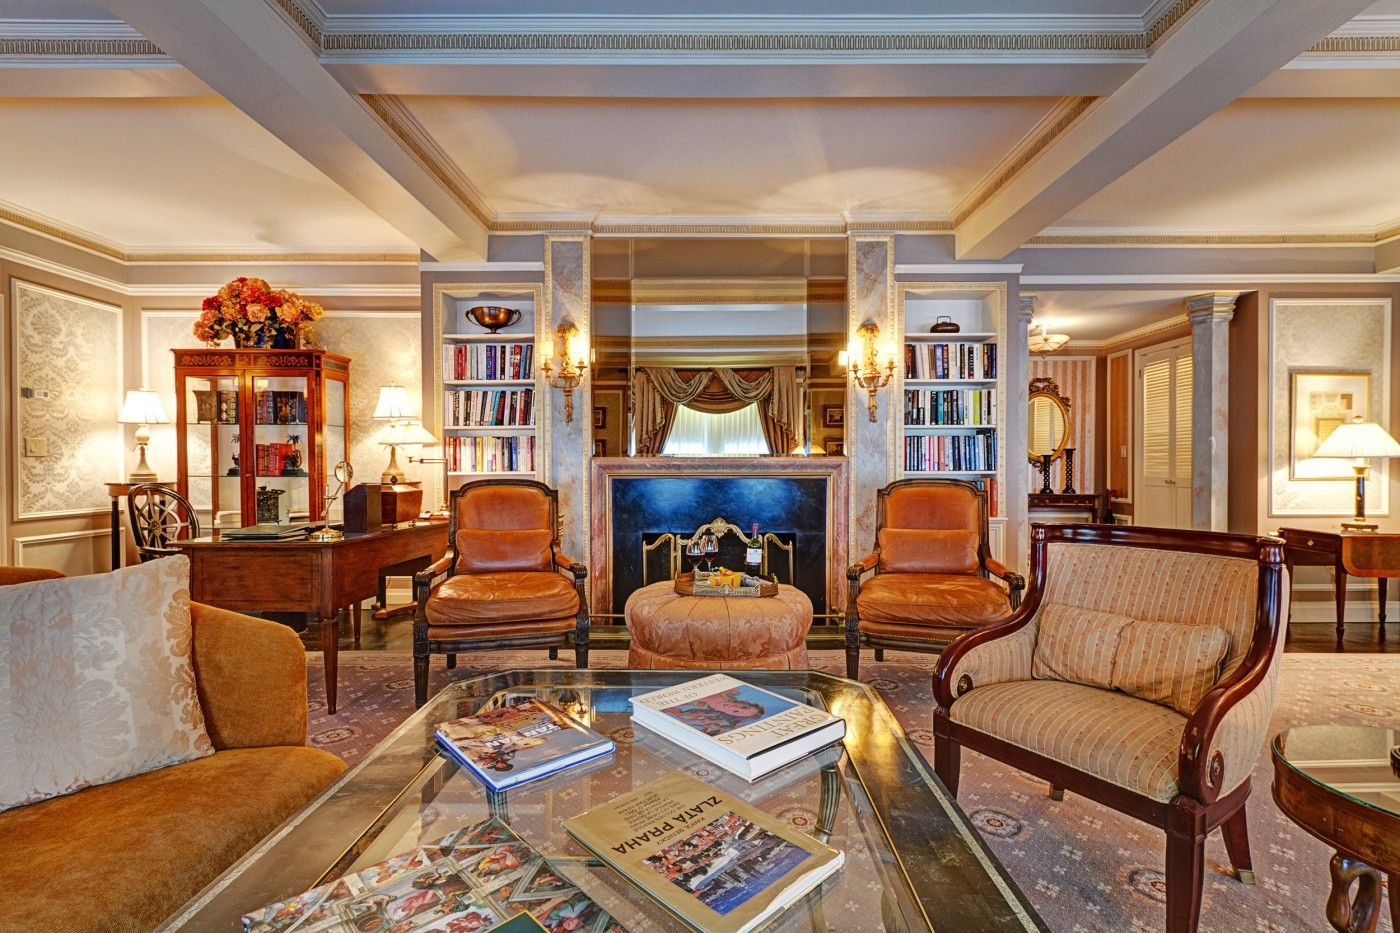 Royal Suite At Hotel Elysee New York City Midtown Manhattan Luxury Boutique Hotel Rooms And Suites In Nyc Boutique Hotel Room Library Hotel Hotel Collection